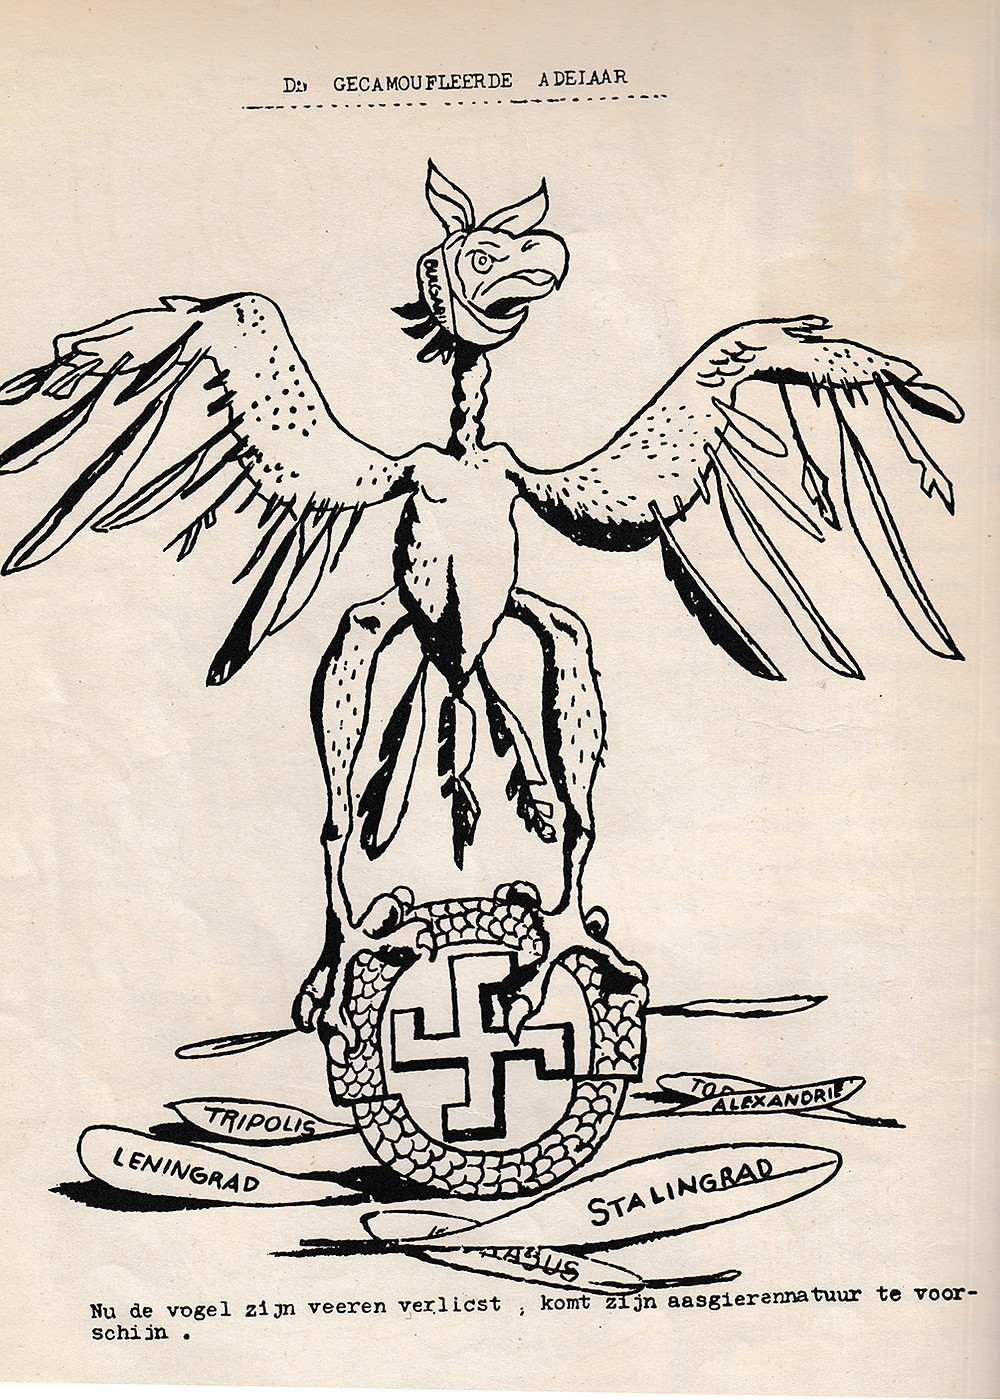 """Front page of the Dutch paper """"The Camouflaged eagle."""" """"Now that the bird [the symbol of Germany] loses its feathers, its vulturous character appears."""" Holland is occupied and the Nazis are loosing the war."""